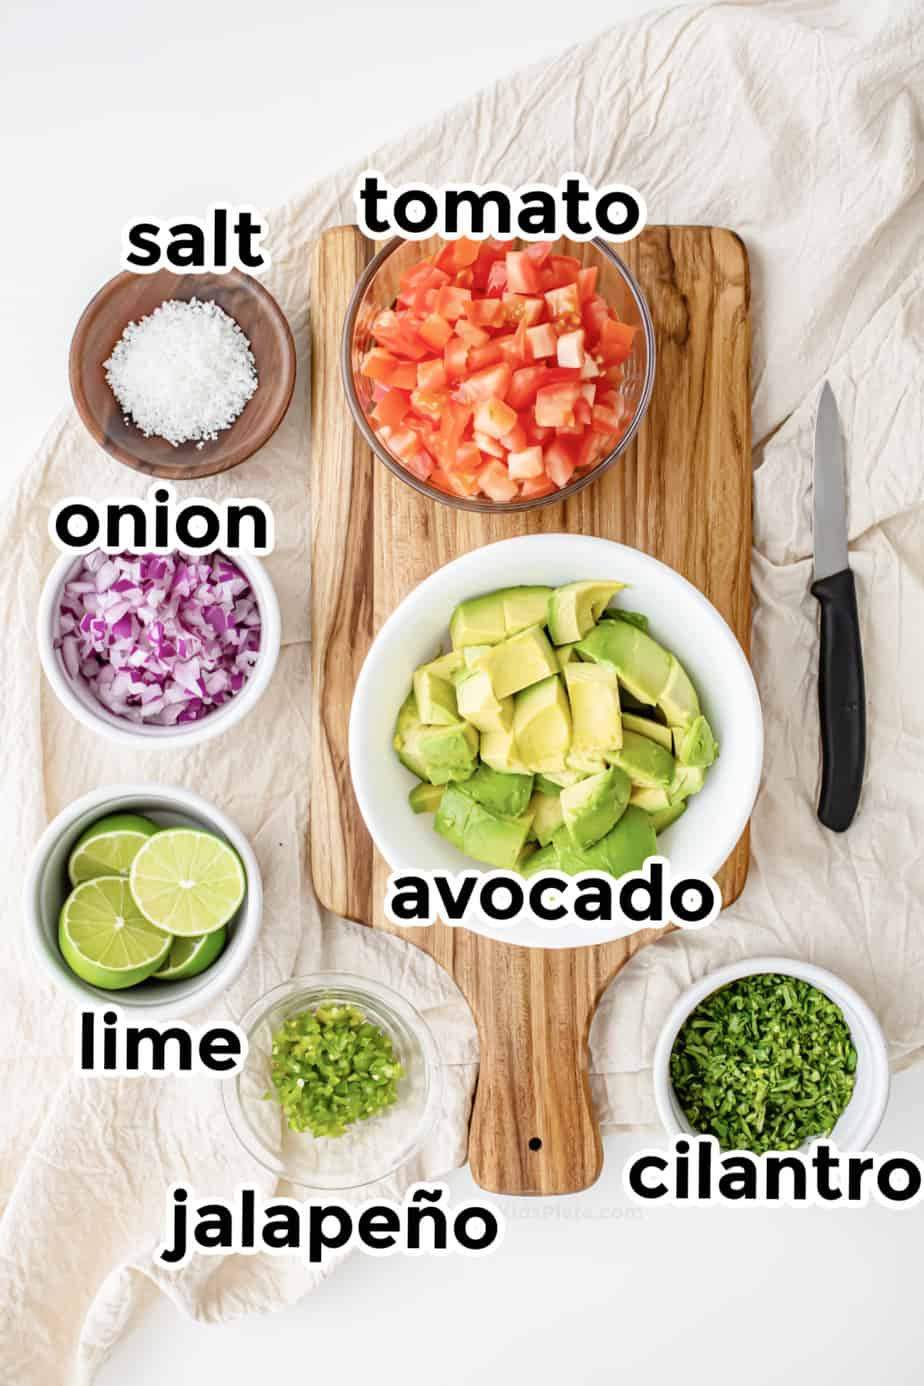 Ingredients for guacamole.